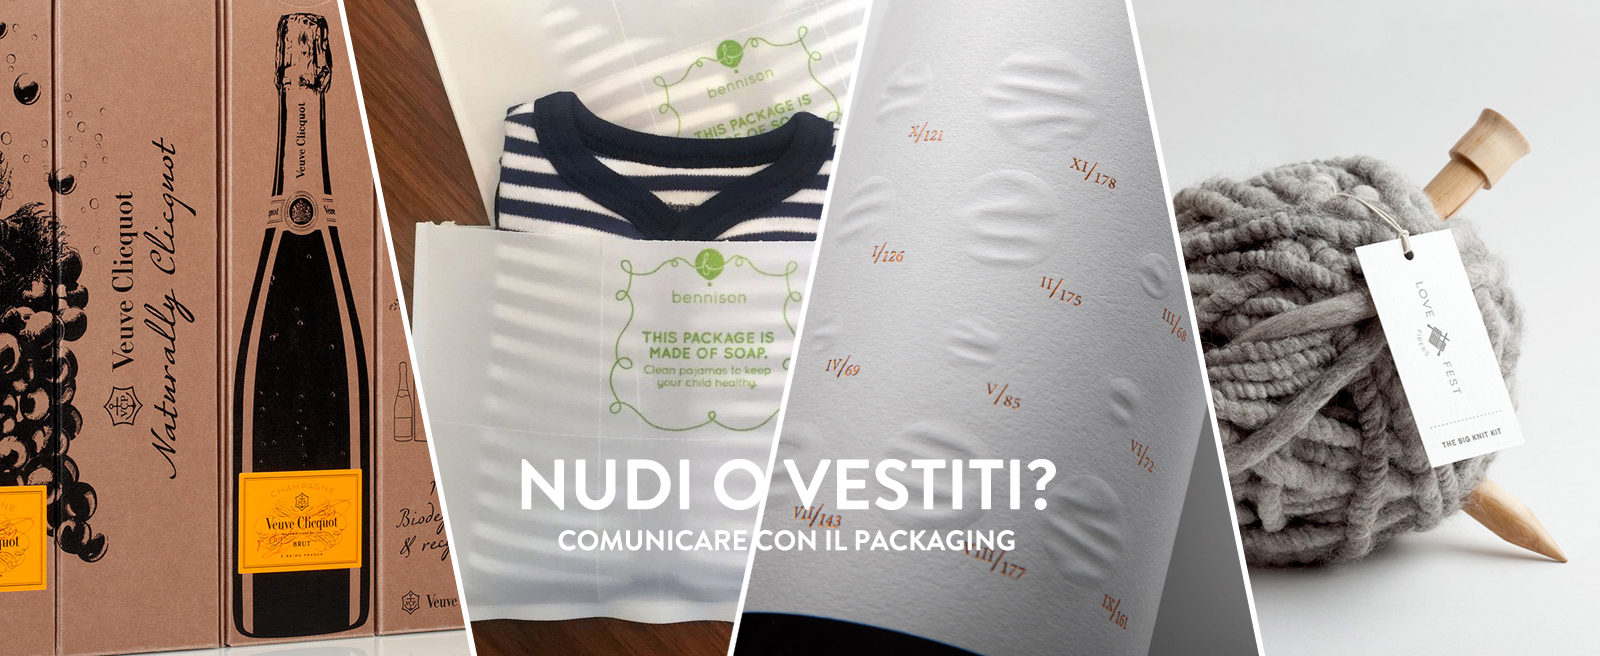 Nudi o Vestiti? Packaging communication